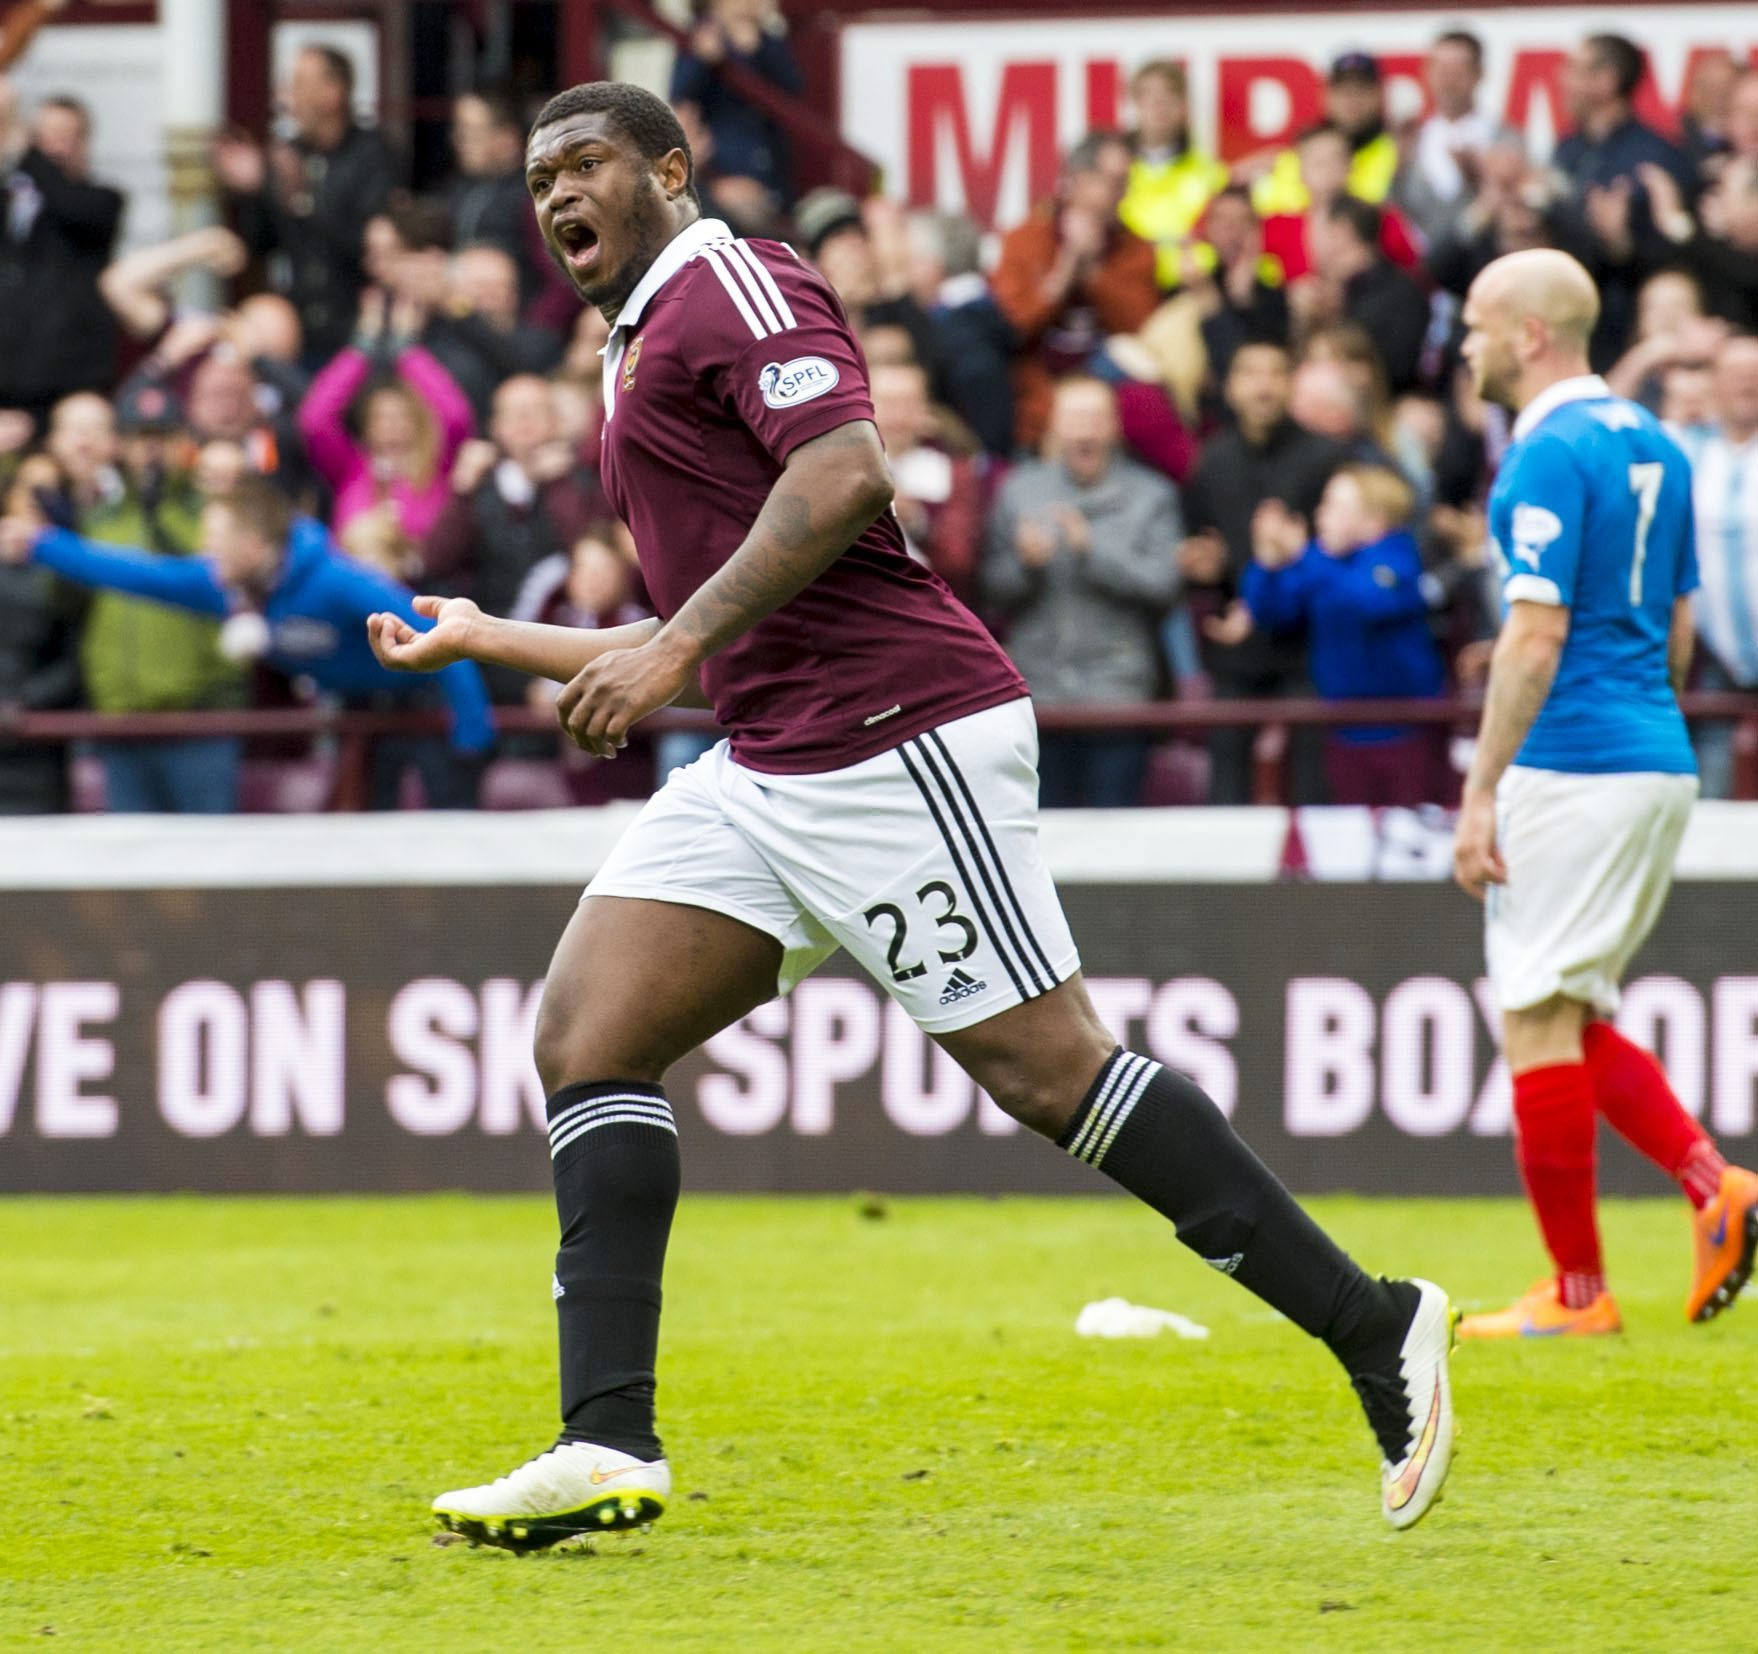 02/05/15 SCOTTISH CHAMPIONSHIP.HEARTS v RANGERS (2-2).TYNECASTLE - EDINBURGH.Hearts' Genero Zeefuik celebrates after scoring his side's first goal of the game. (24993478)